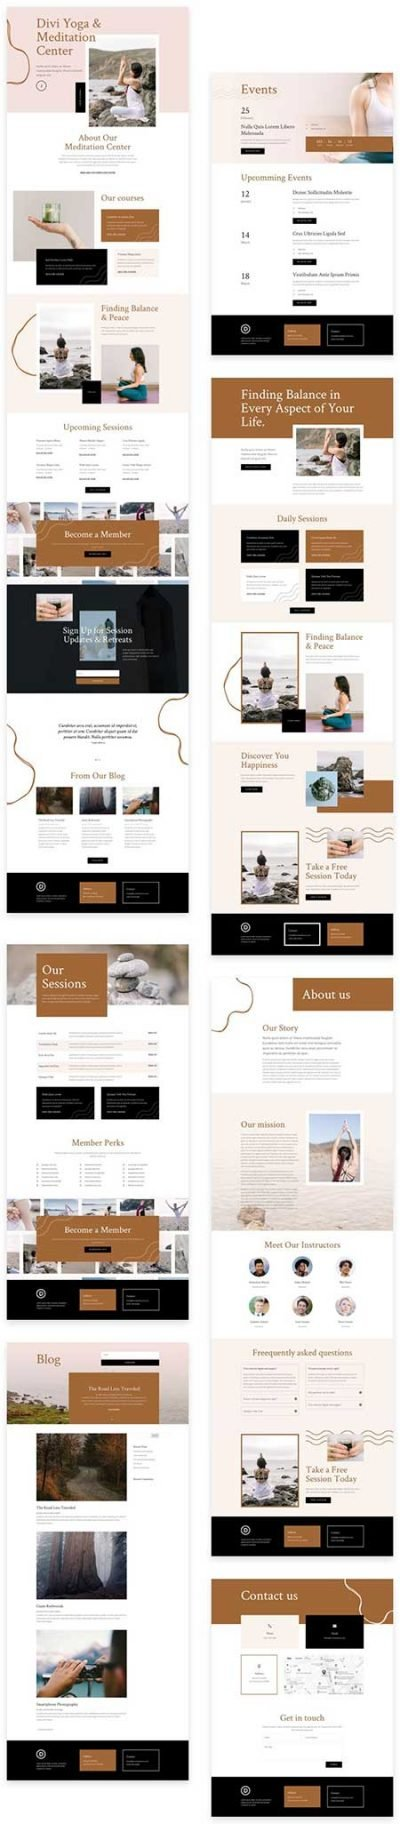 Divi meditation website template